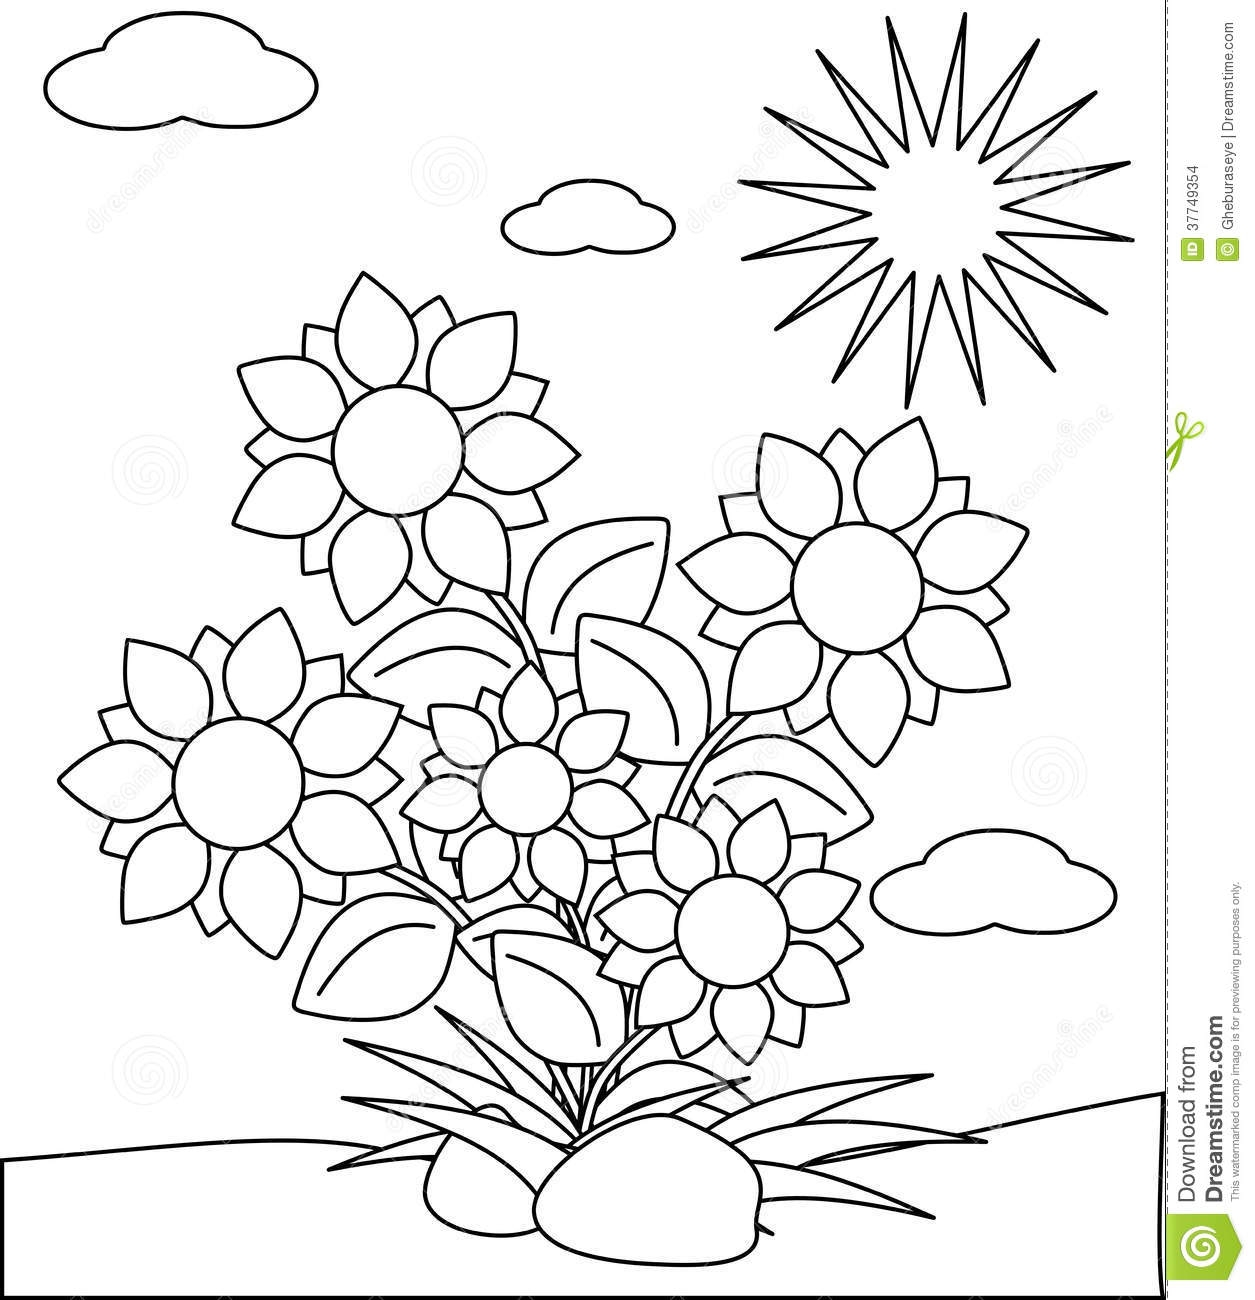 flower pot coloring page - stock images coloring flowers image representing some cartoon version project thought to be colored children years image